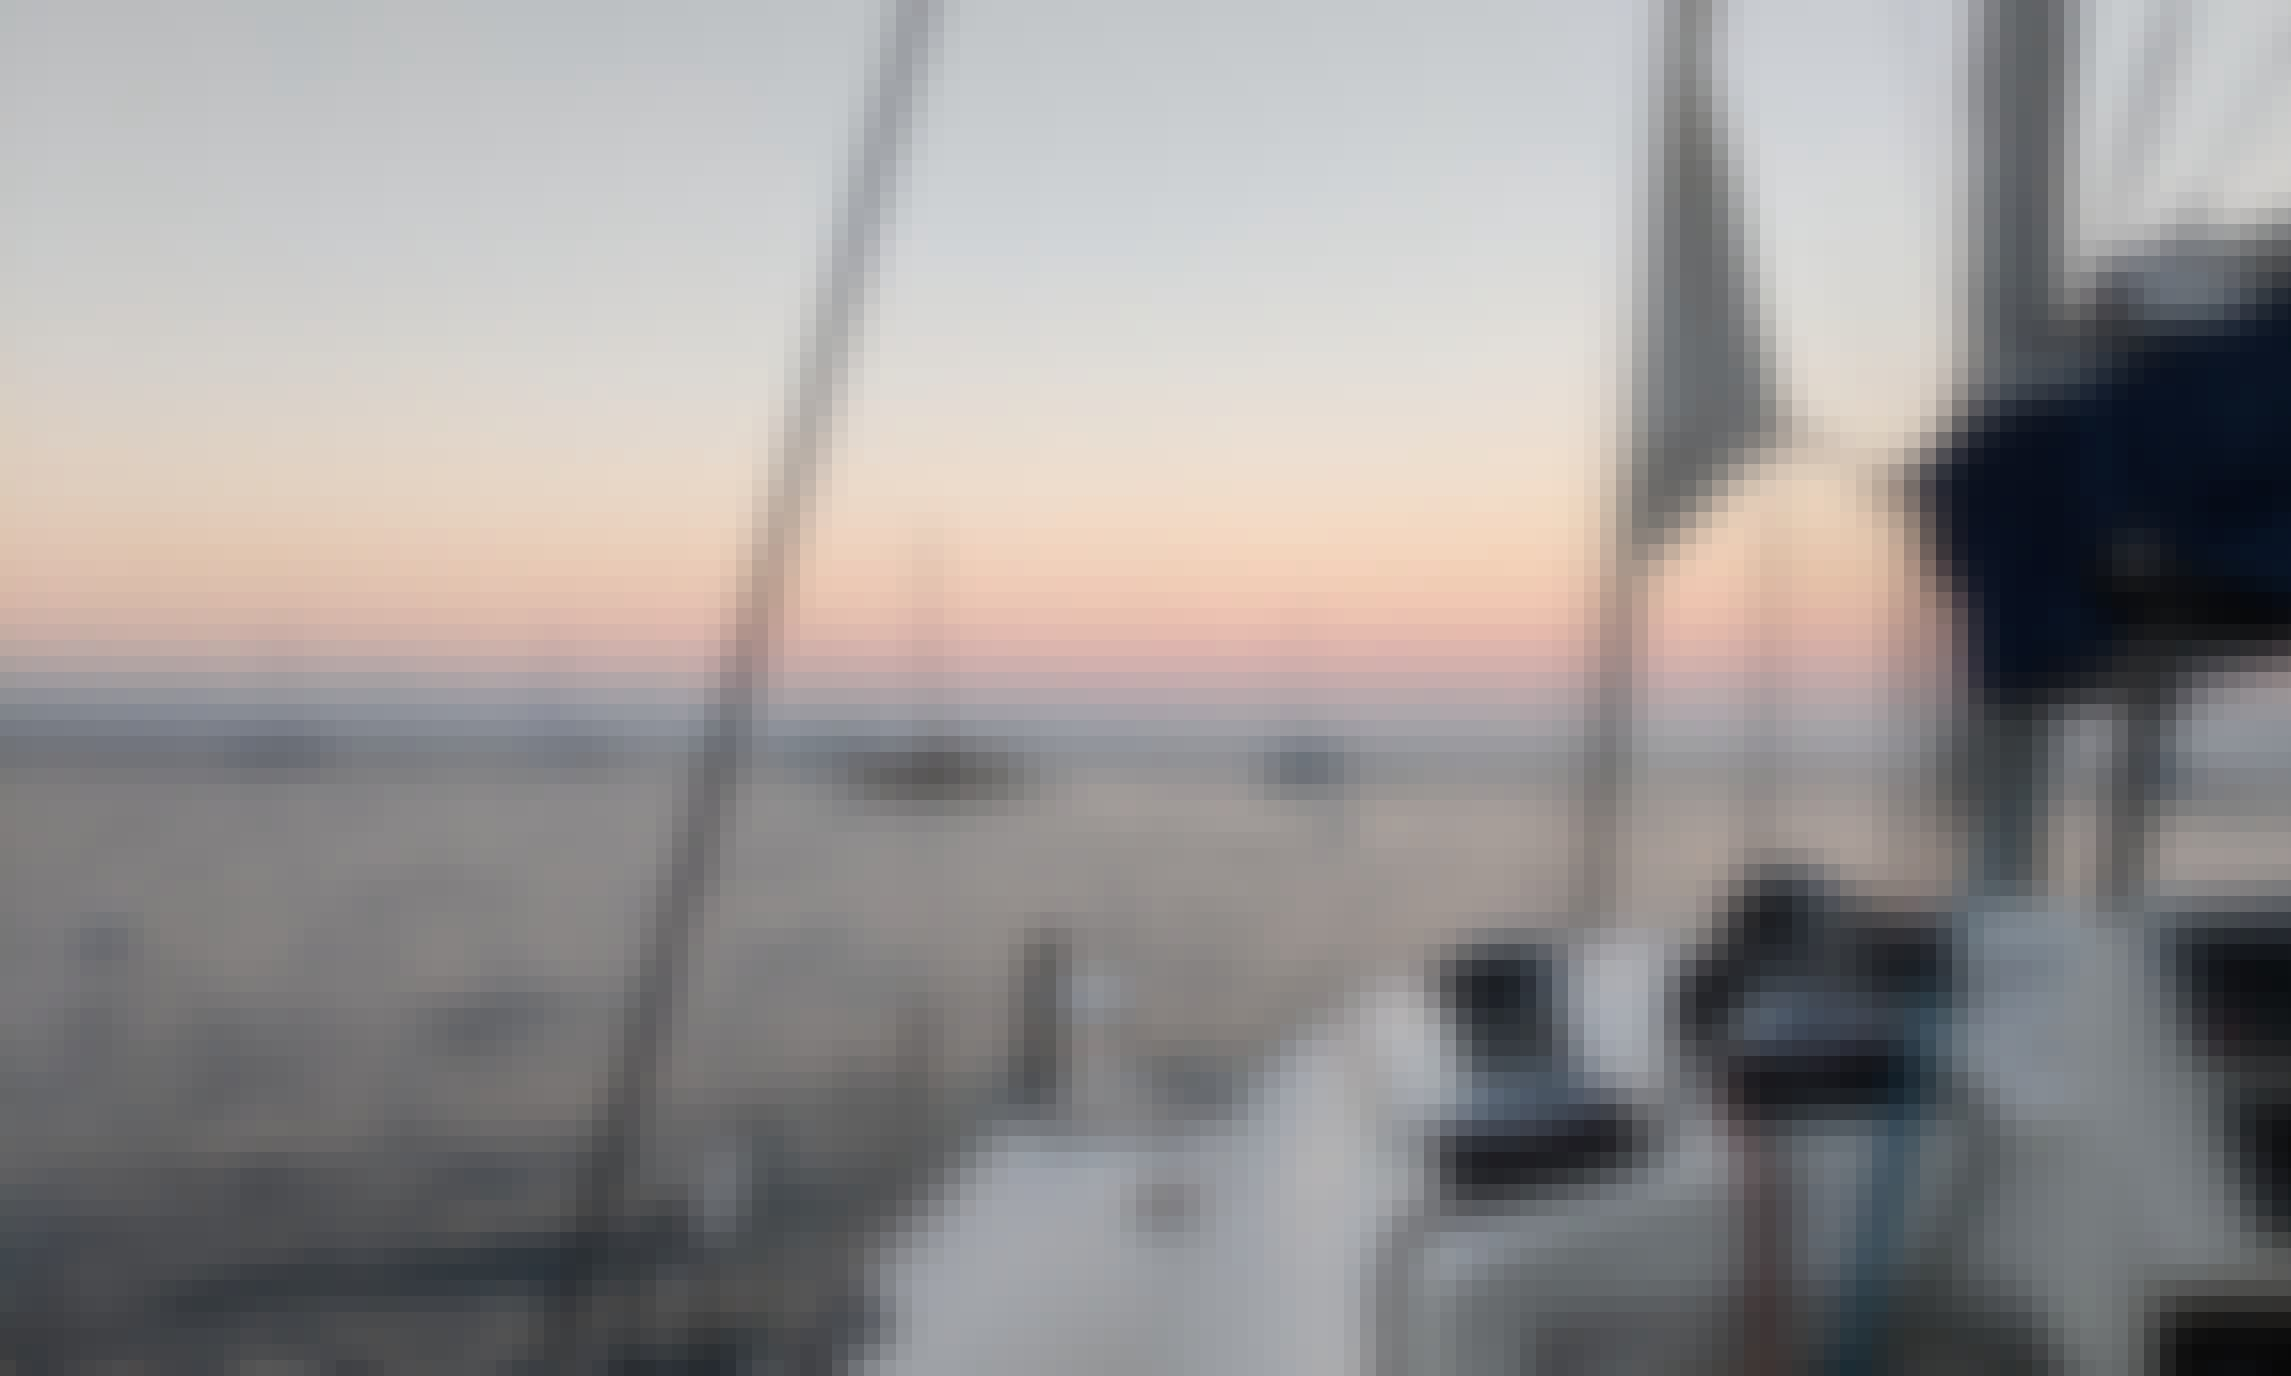 Bareboat charter sailing catamaran for parties / events in Long Beach